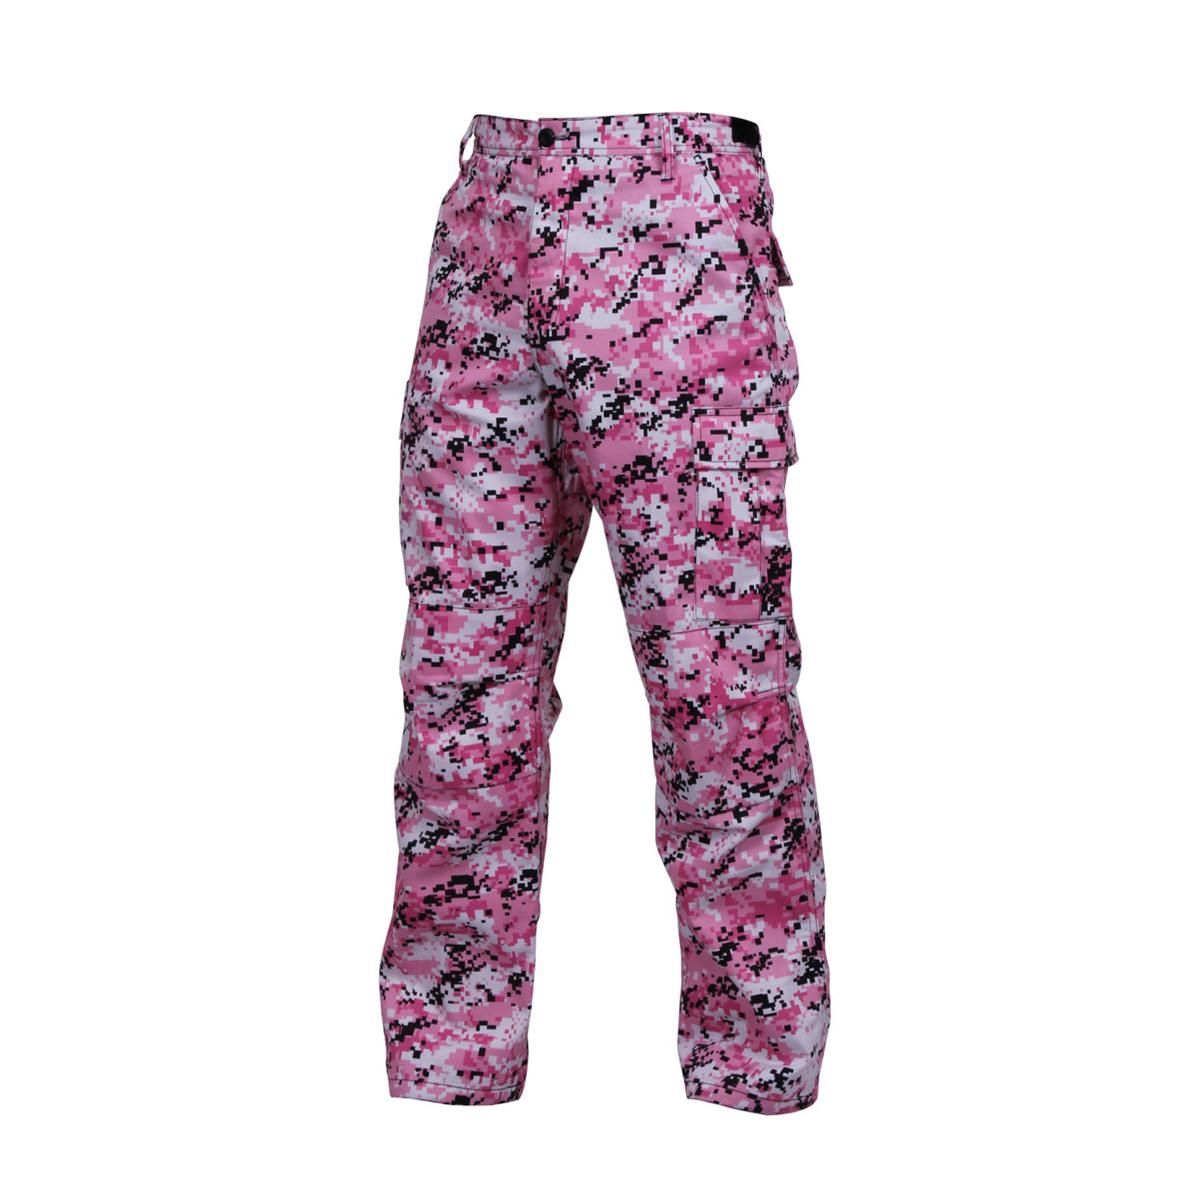 Military Style Digital Camo BDU Pants Military Fatigues, Pink Digital Camouflage